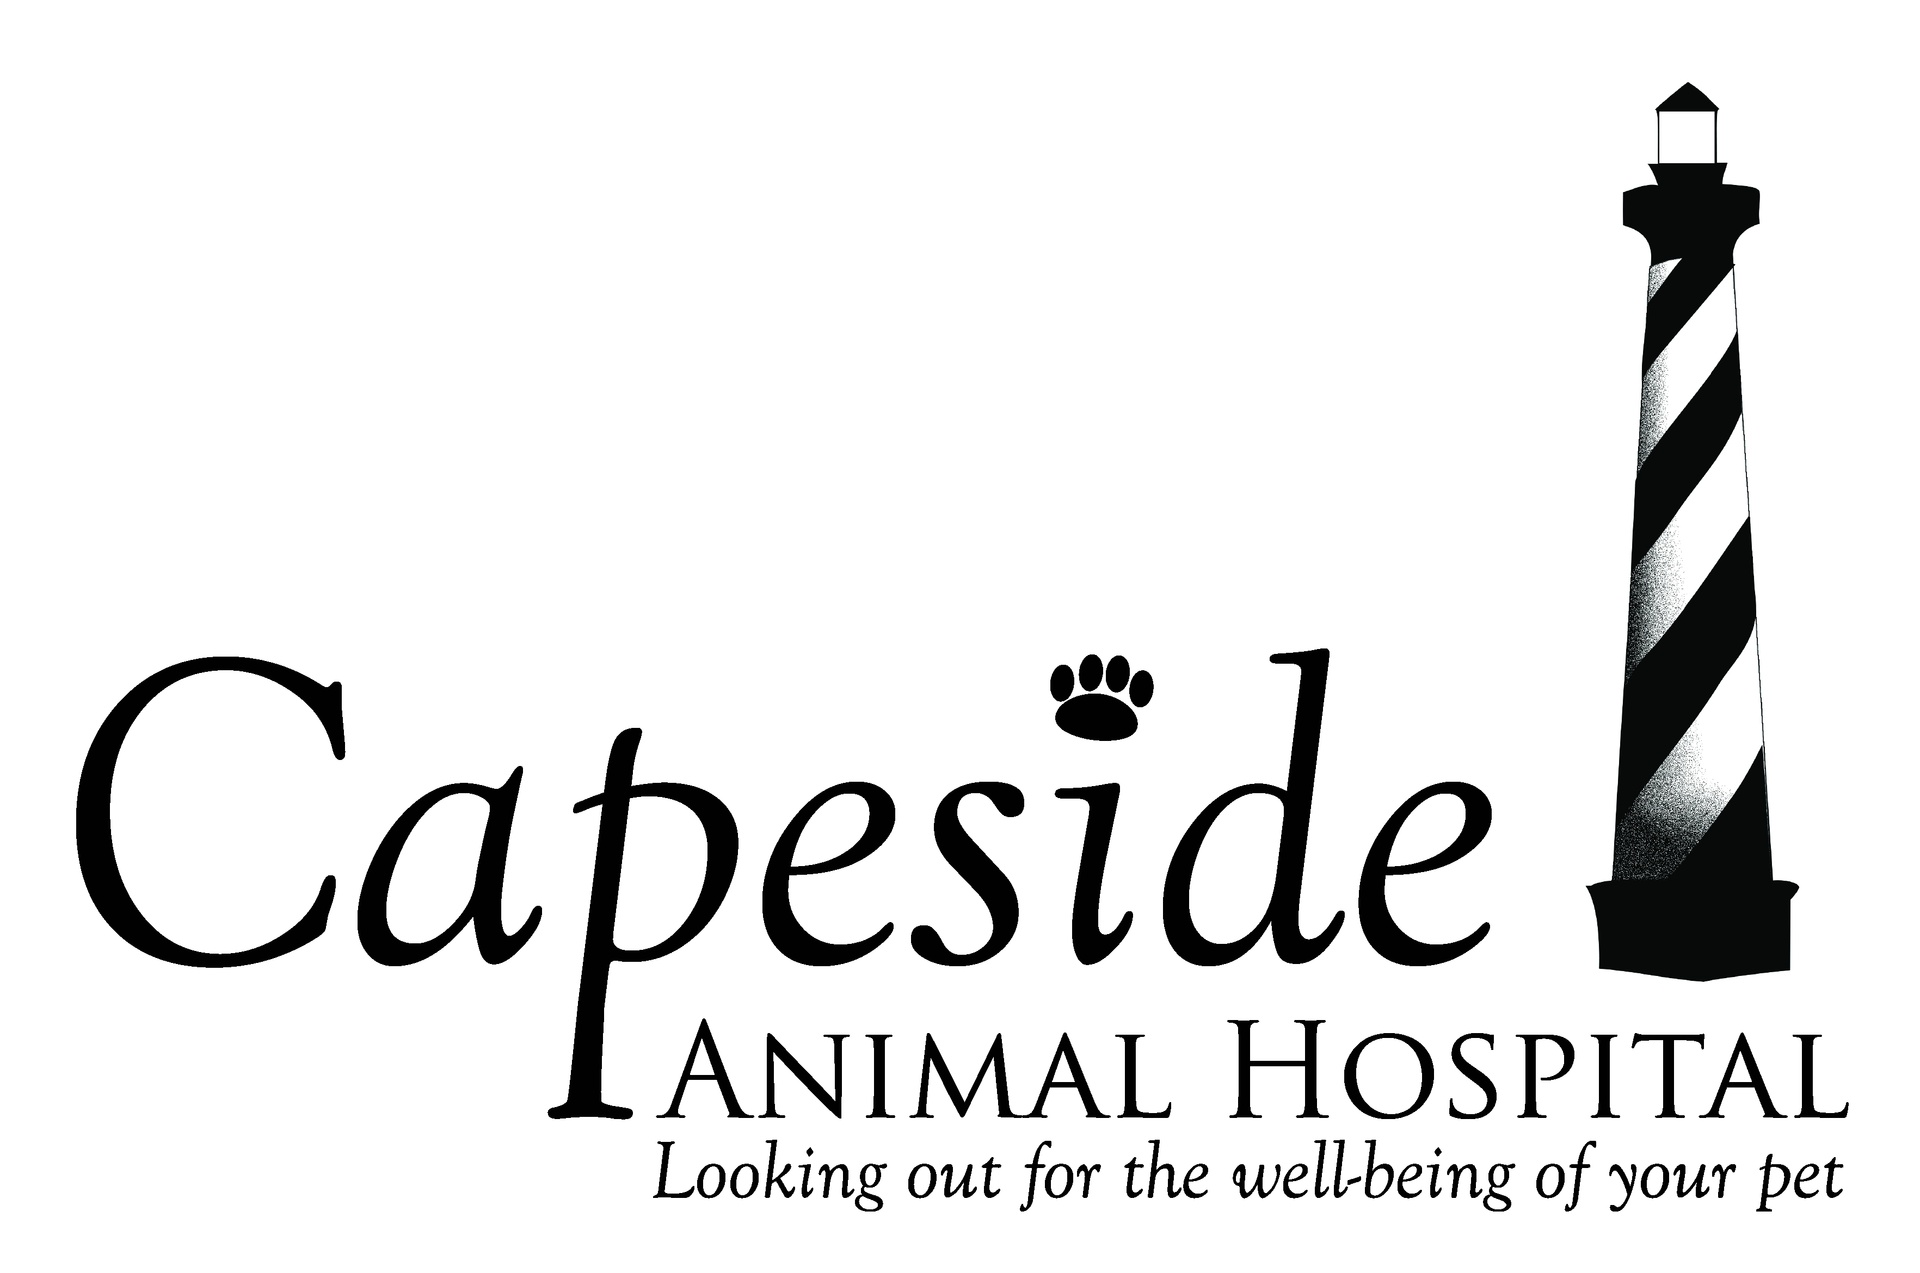 Capeside Animal Hospital